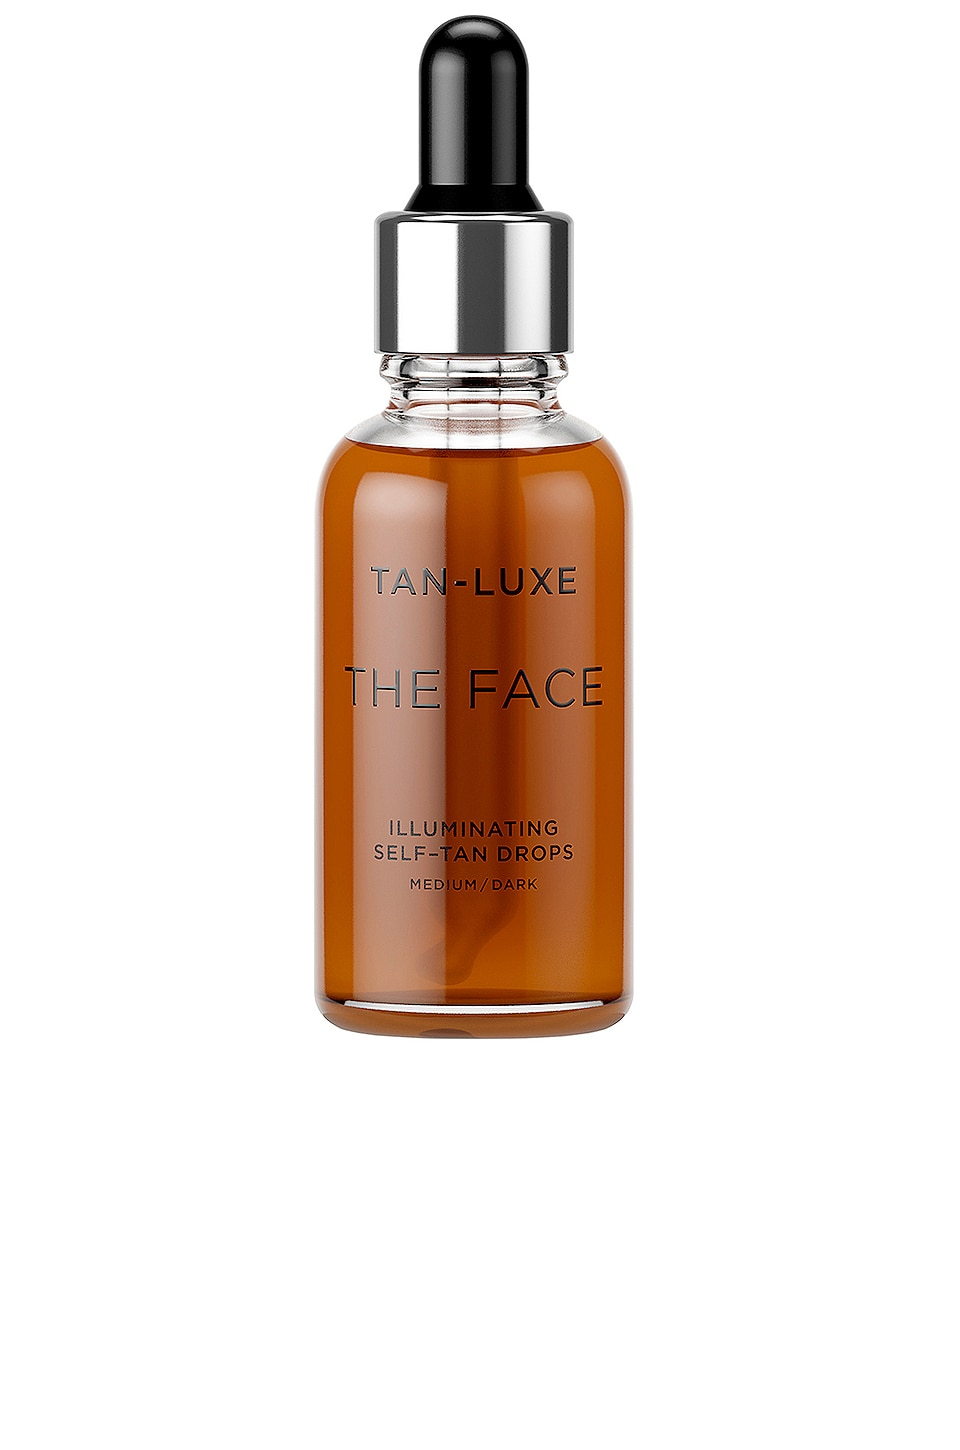 Tan Luxe The Face Illuminating Self-Tan Drops in Medium / Dark